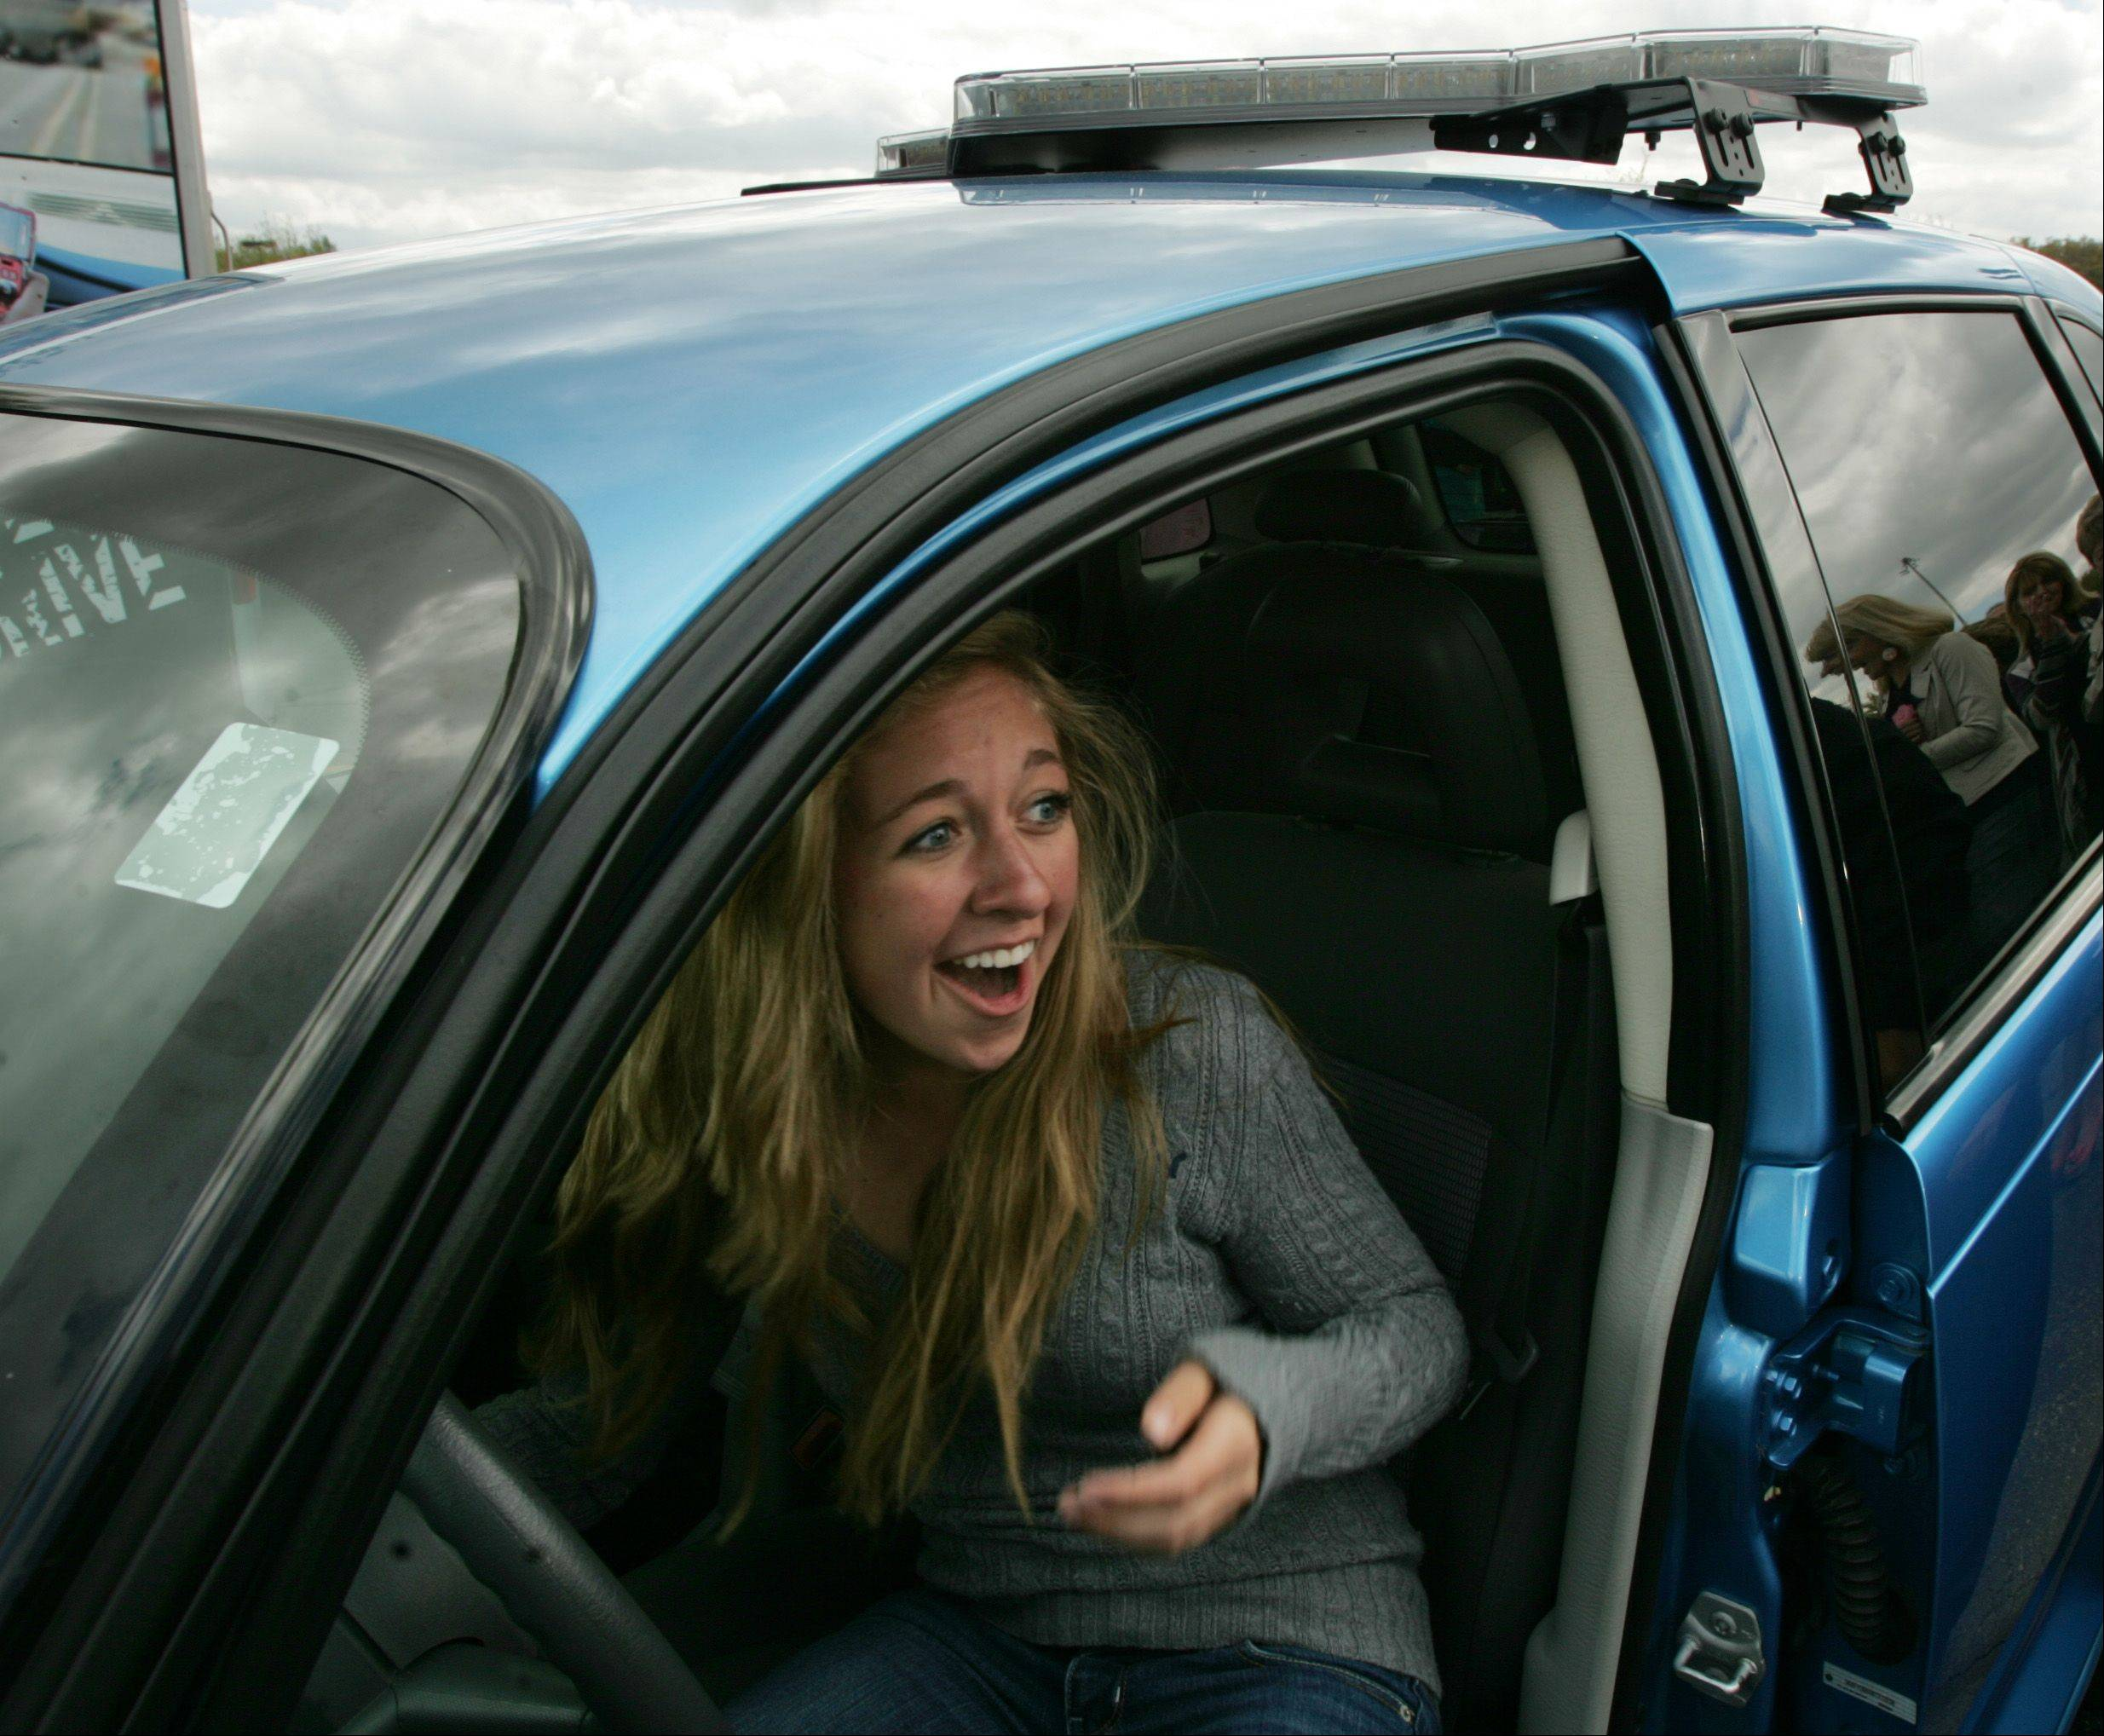 Crystal Lake Central junior Mikayla Tuszynski can hardly believe she won the blue 2008 Chrysler PT Cruiser Thursday in Crystal Lake at the 2012 banquet for Operation Click. Students at a growing number of high schools are signing a pledge to drive safely, including wearing seat belts and not getting any tickets or other violations. Finalists with the highest percentage from the participating high schools get a chance to pull a key from a bowl to see if the car starts. Thanks to donations from Crystal Lake Chrysler Jeep Dodge Ram, and Black Diamond Plumbing, two cars were given away Thursday.